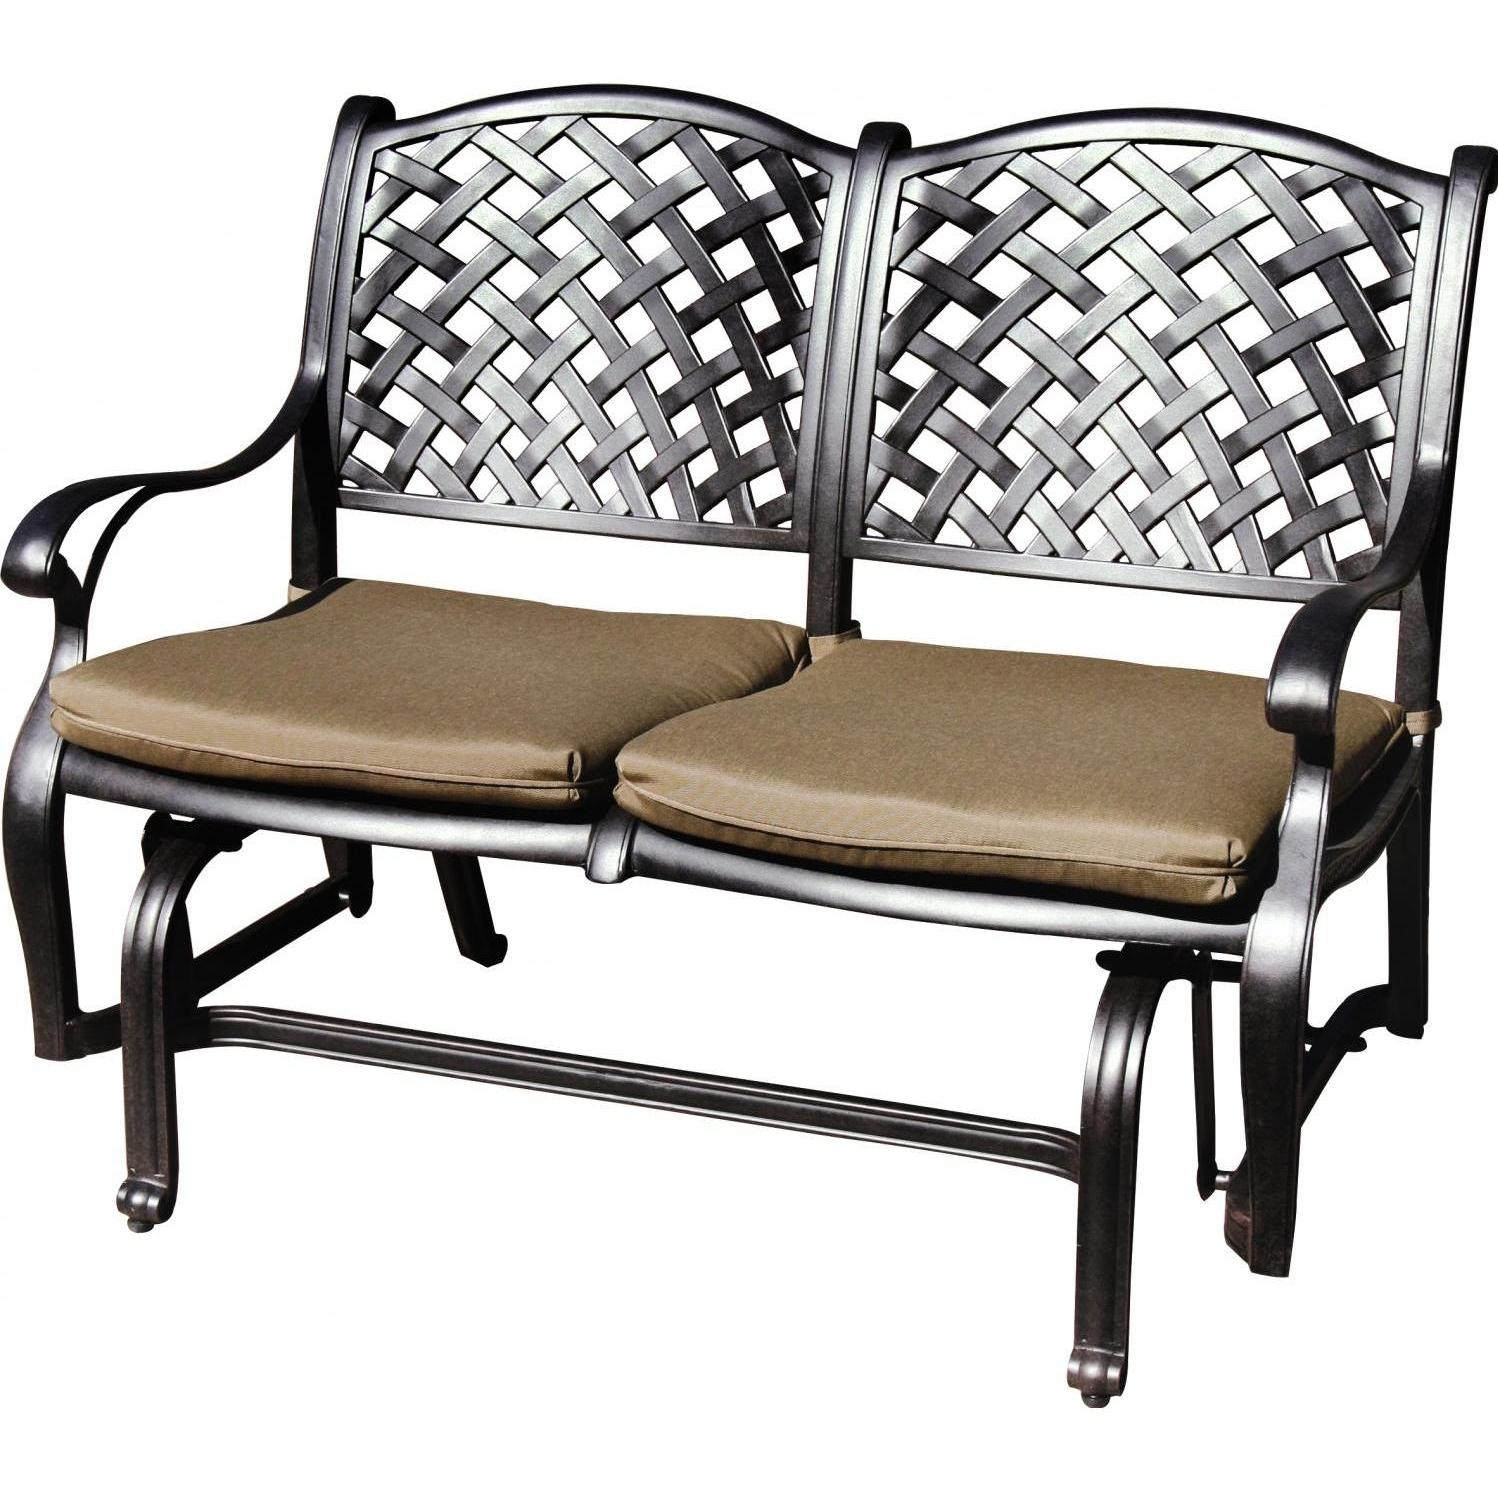 Darlee Nassau Cast Aluminum Patio Bench Glider Pertaining To Metal Powder Coat Double Seat Glider Benches (View 7 of 25)